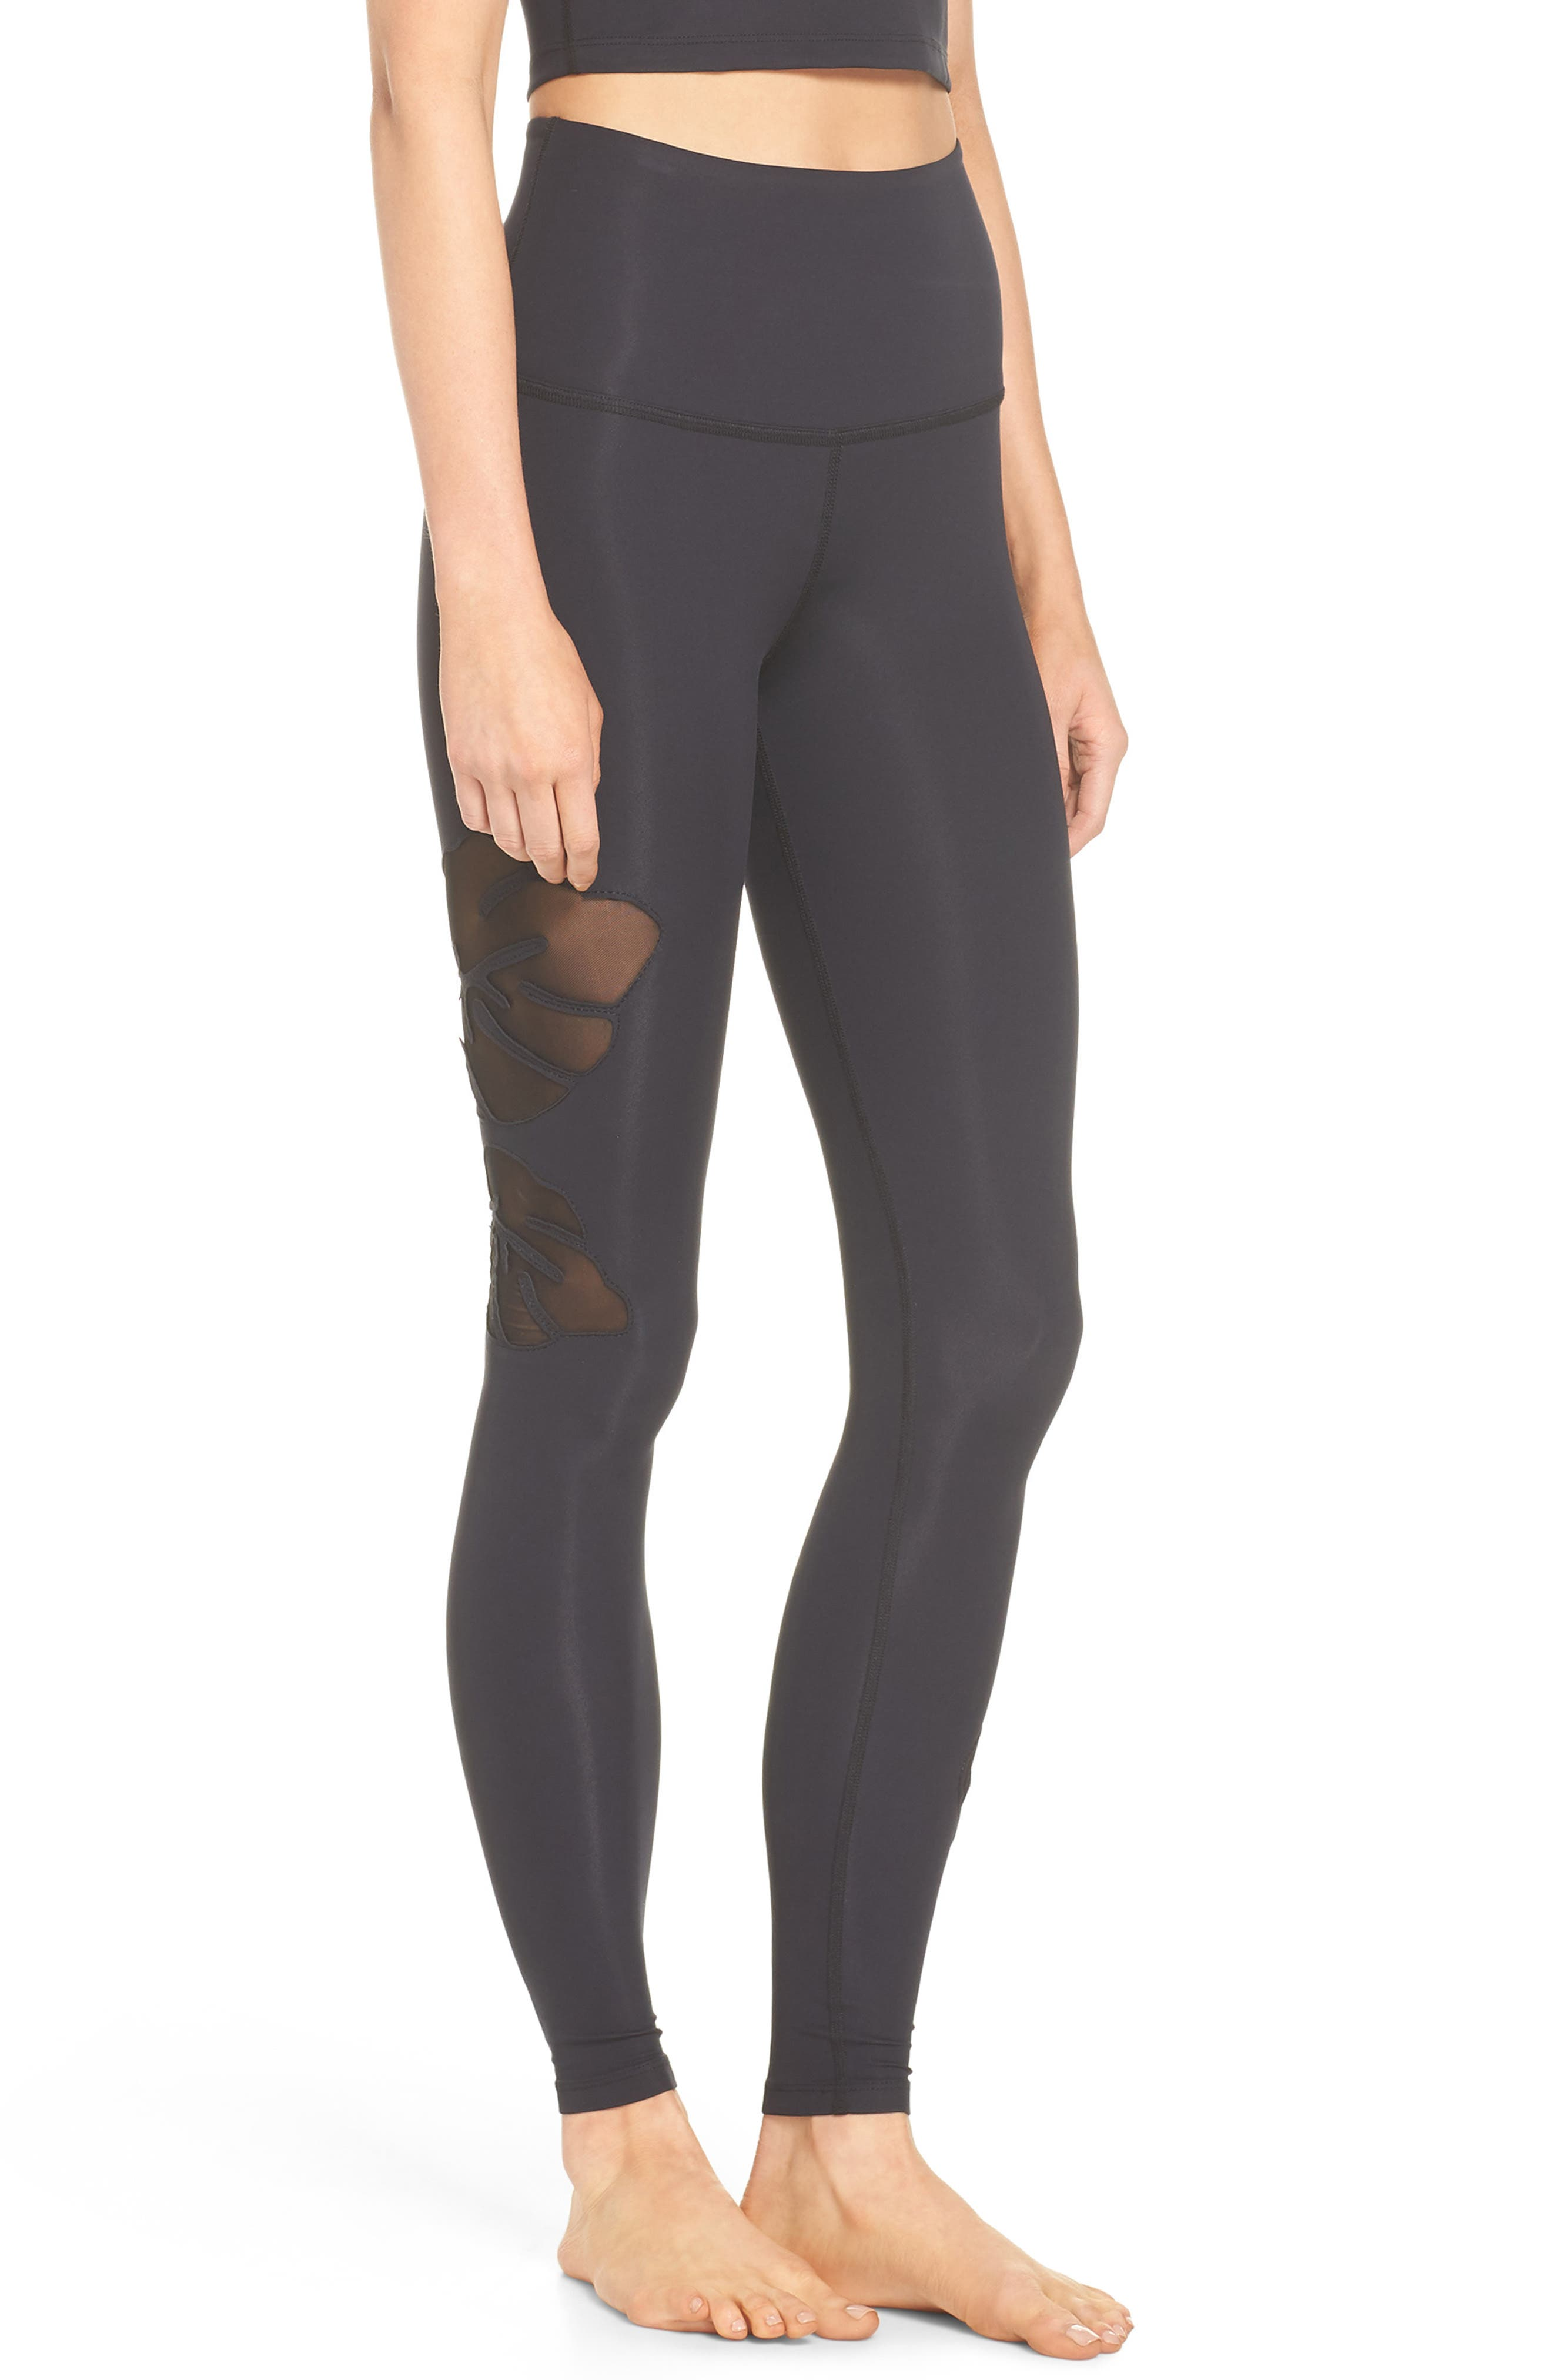 Take Leaf High Waist Leggings,                             Alternate thumbnail 9, color,                             Black